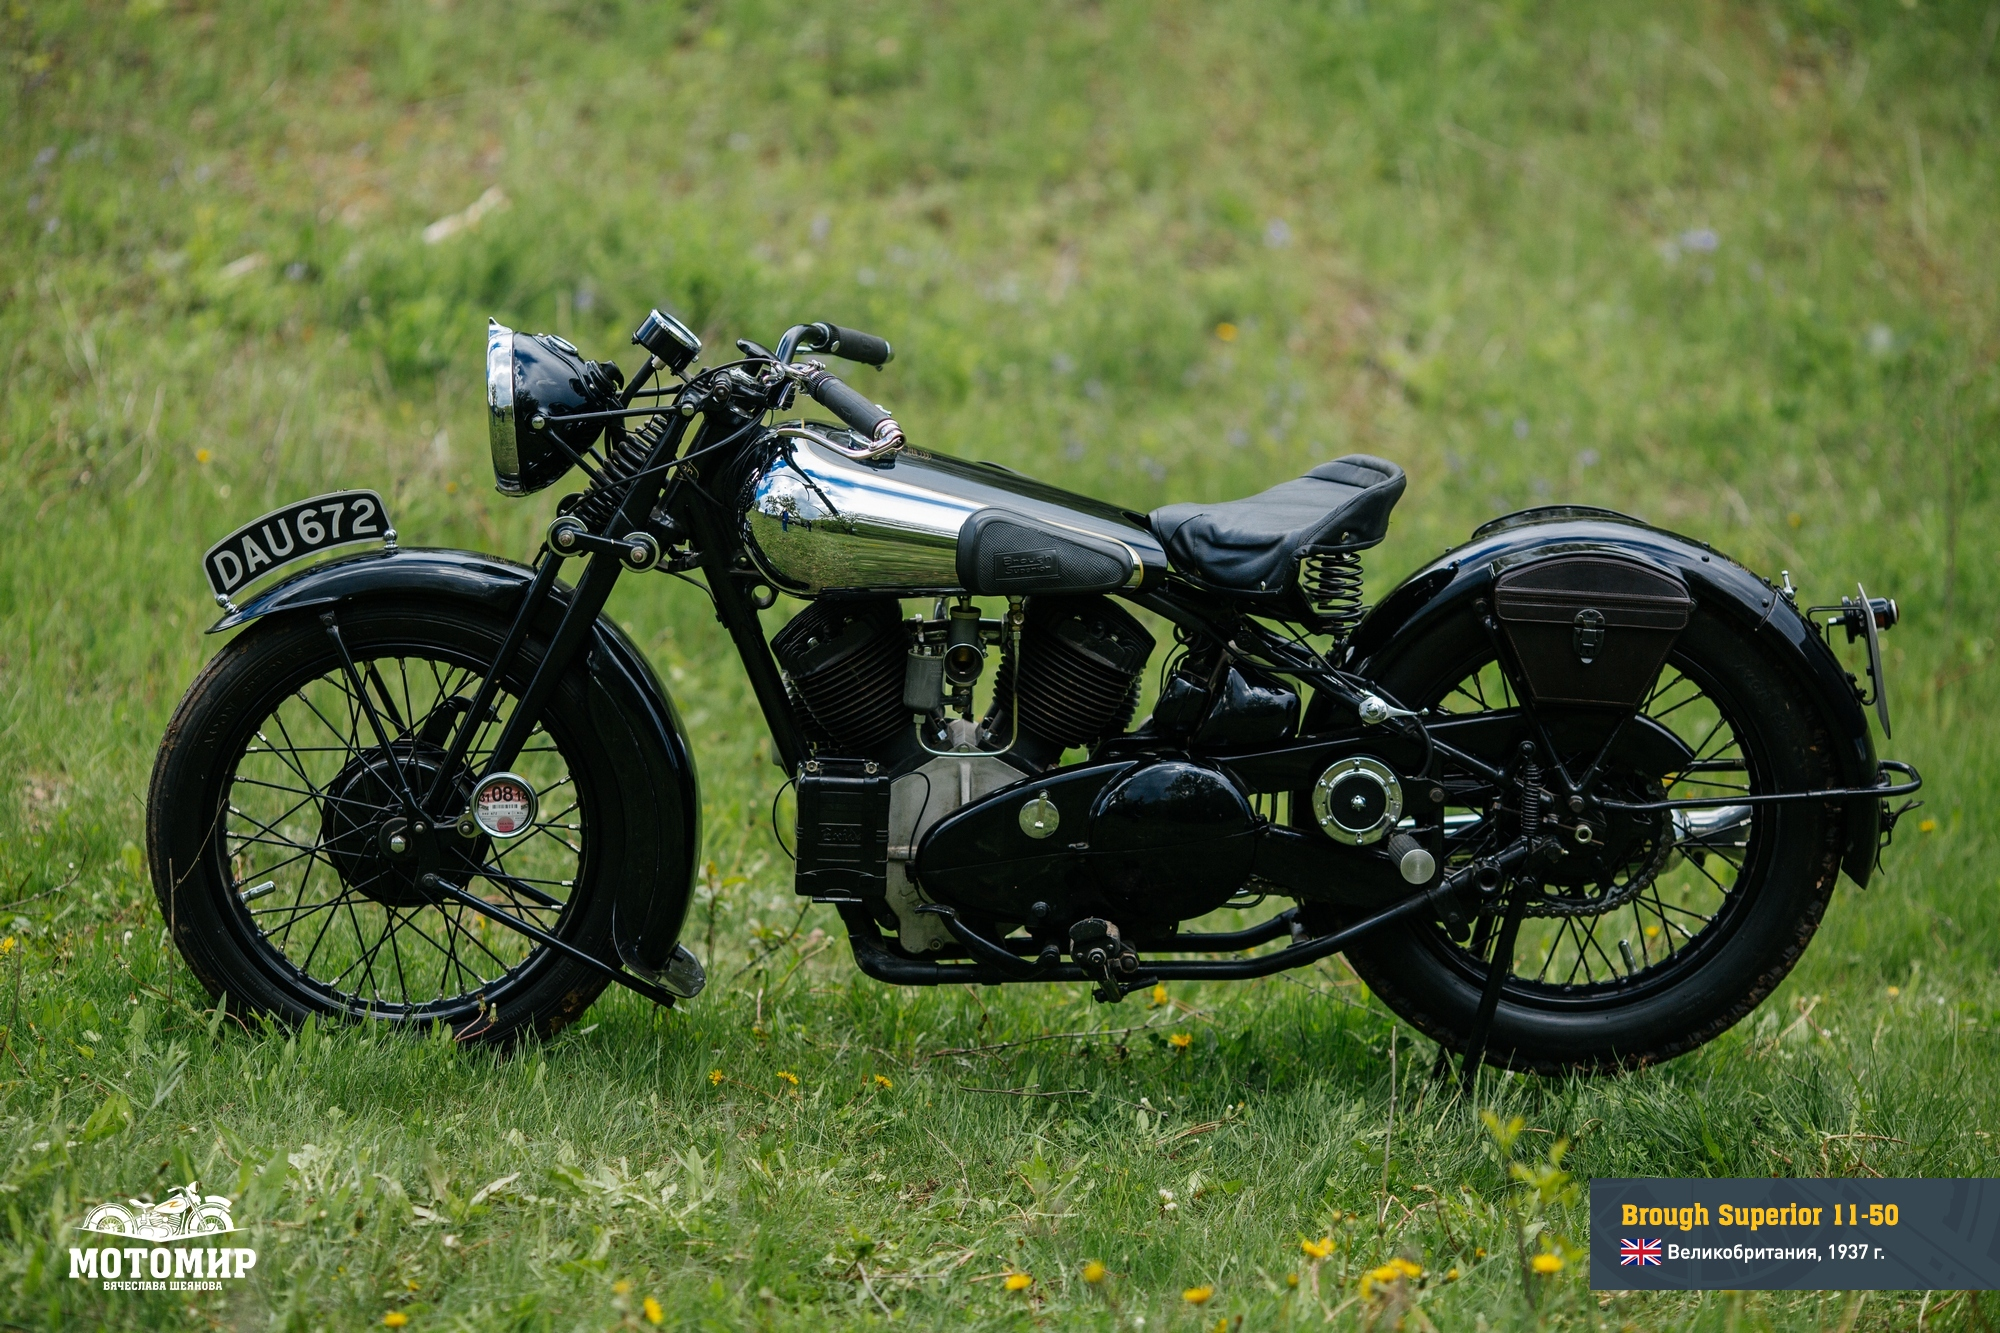 brough-superior-11-50-201509-web-01